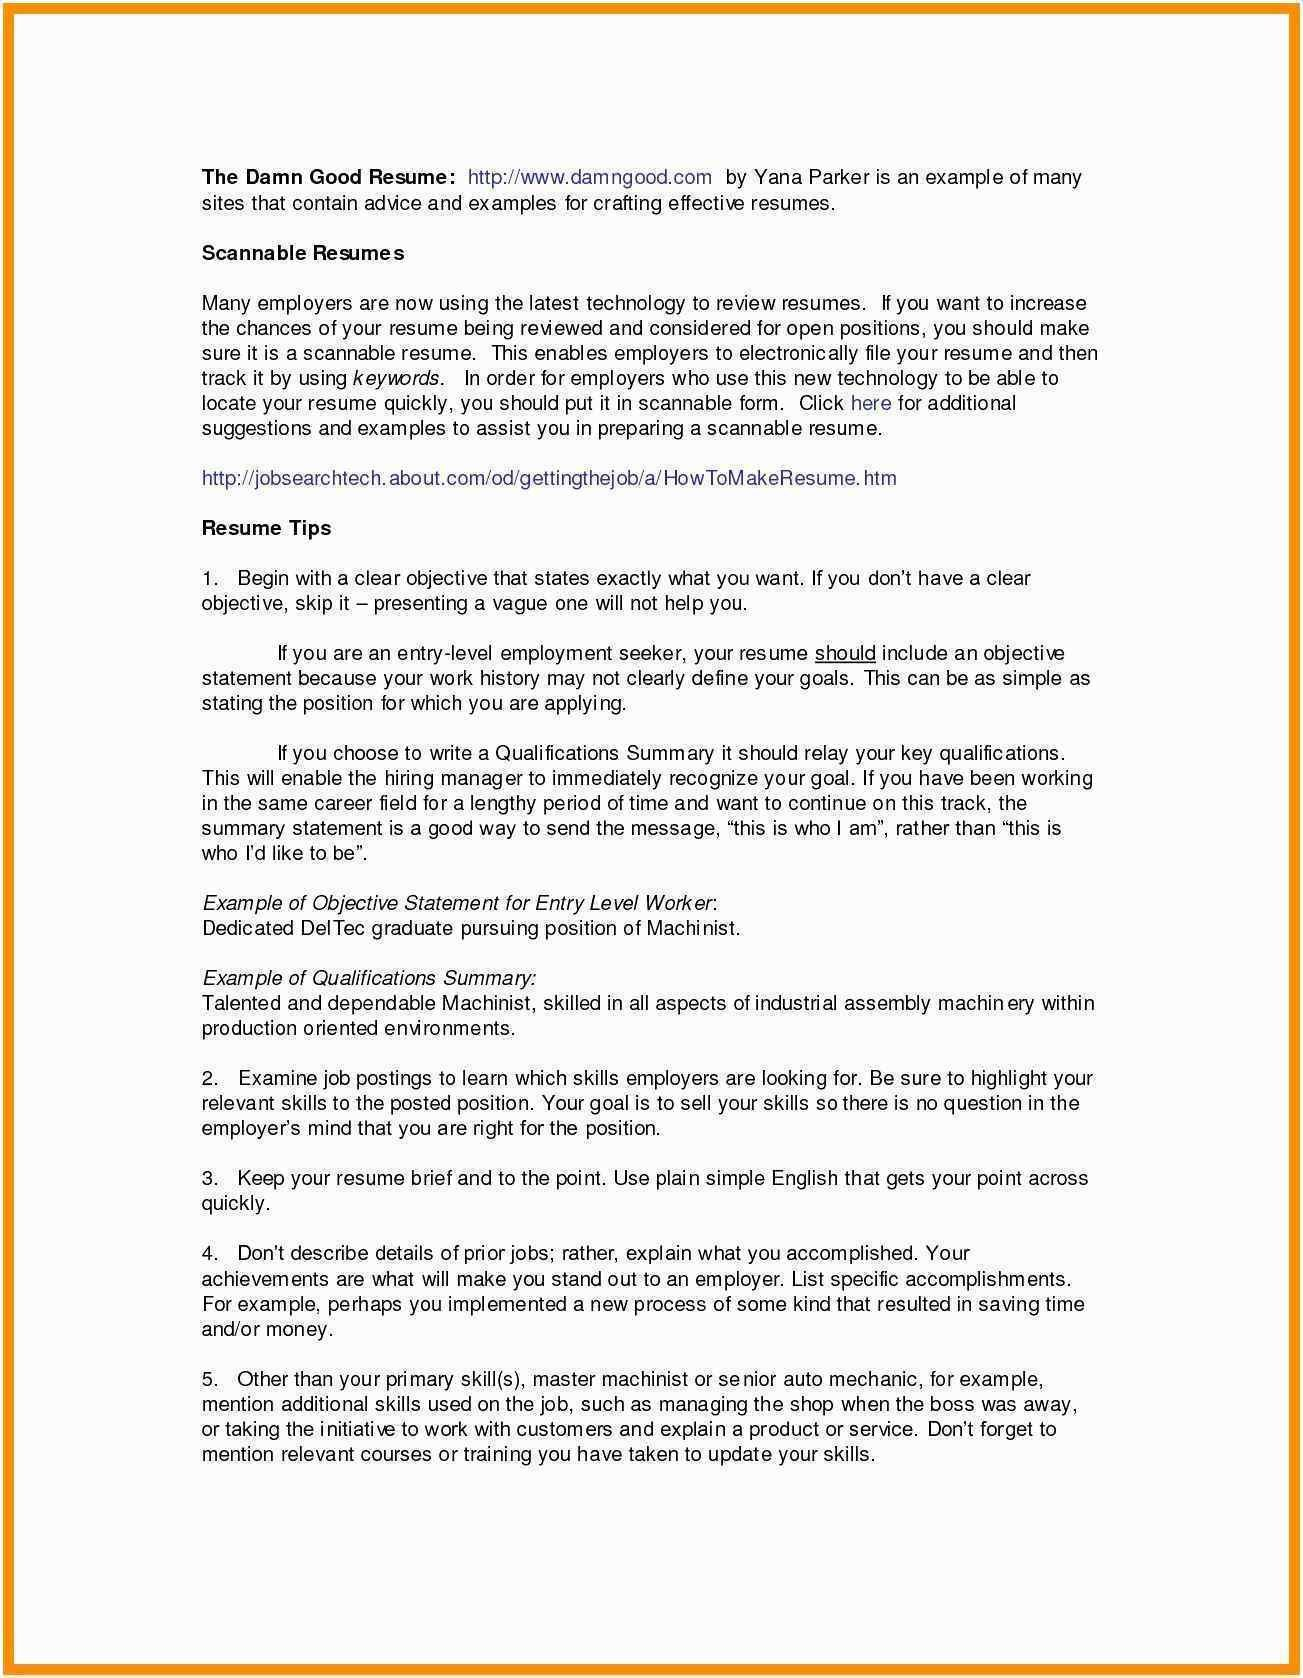 Daycare Business Plan Template Home Of For Center Unique Best With Daycare Business Plan Template Free Download